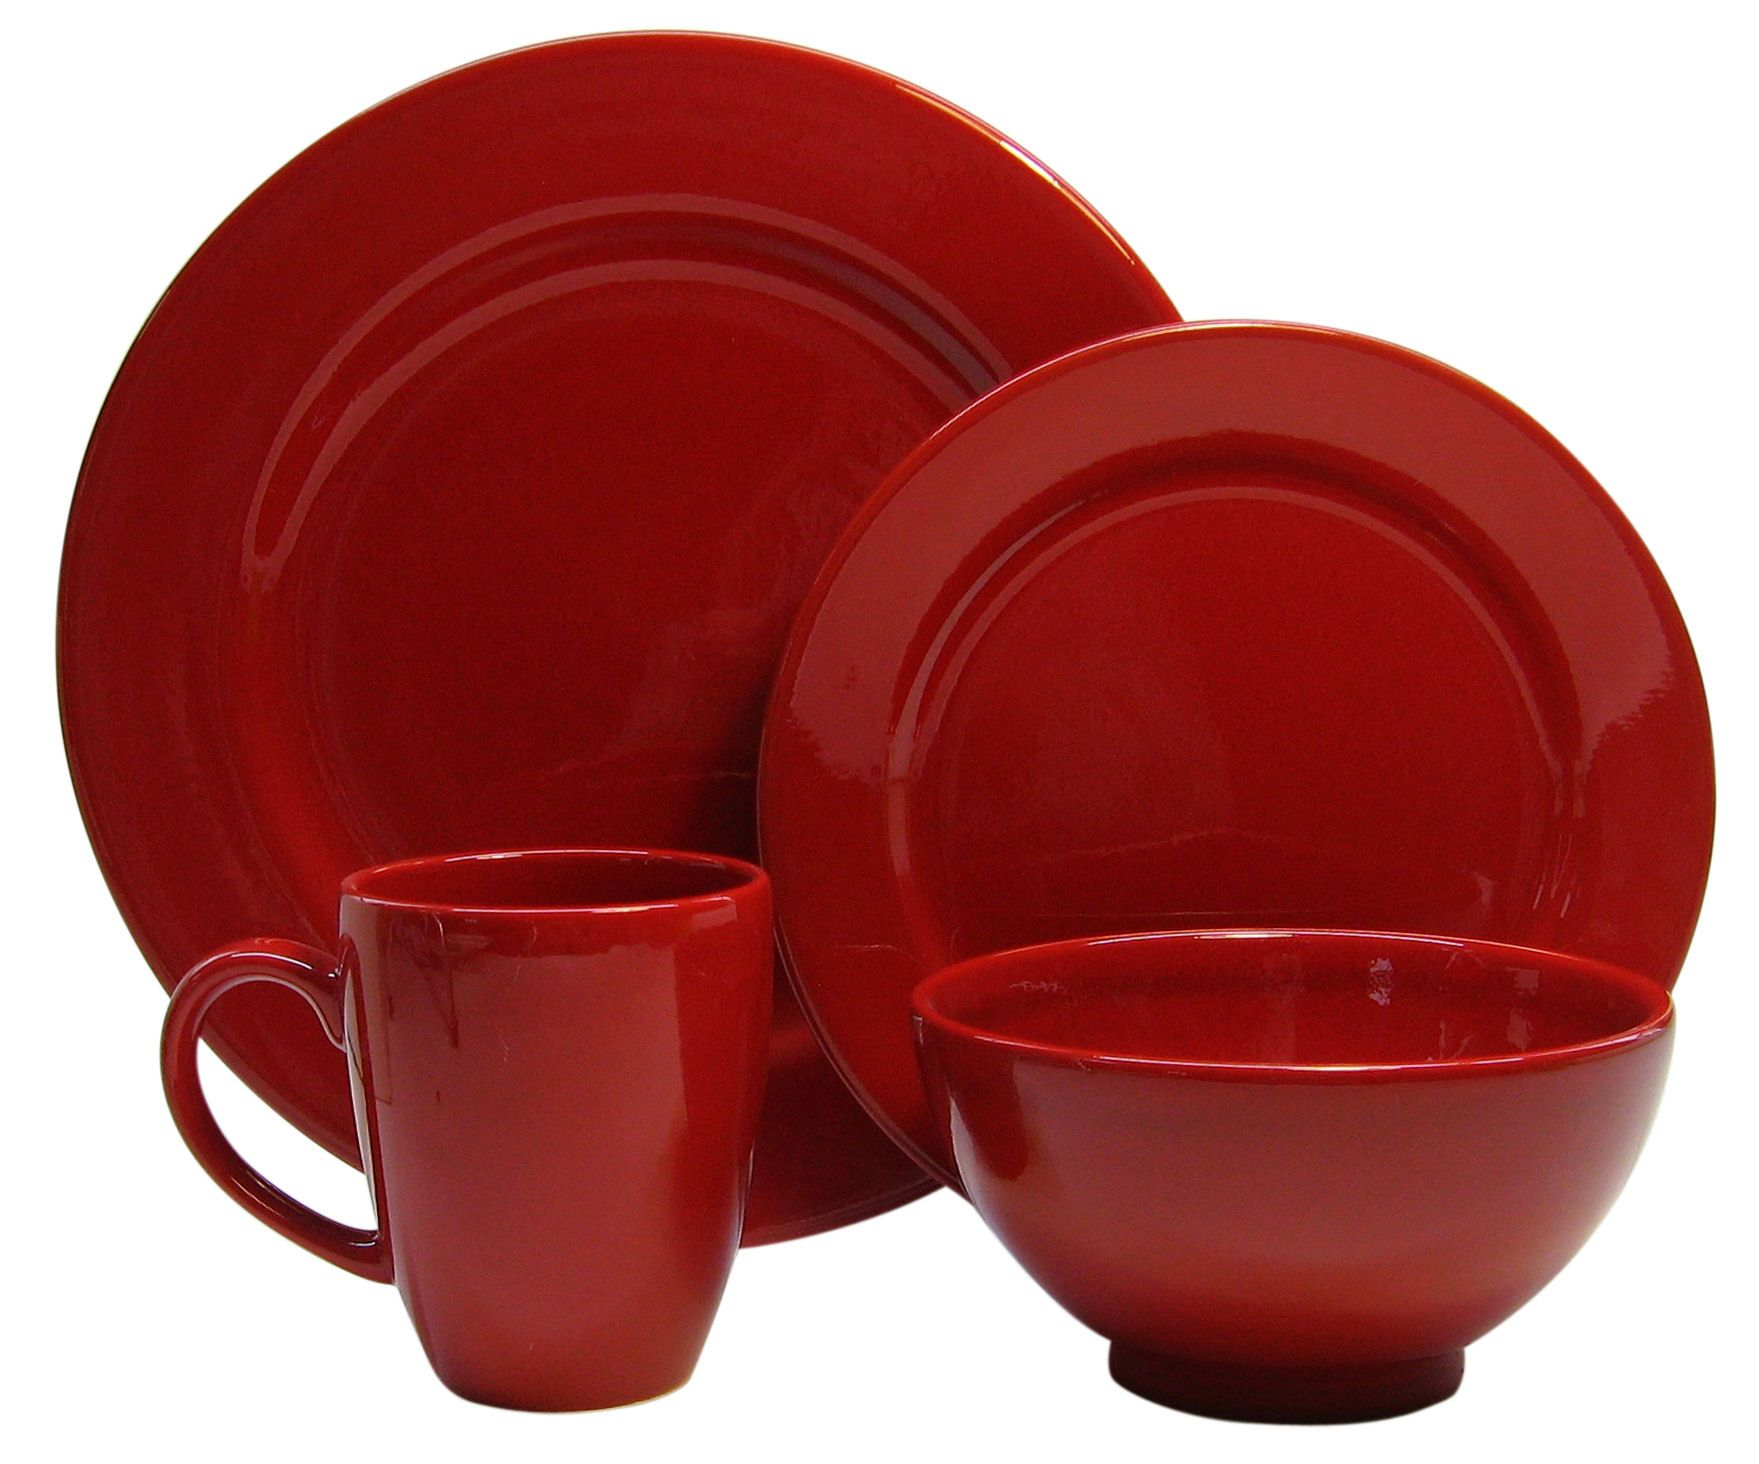 16pc Place Setting Fun Factory Red, Service for 4 (Dinner Salad, Soup/Cereal Bowl, Jumbo Caffelatte Cup)